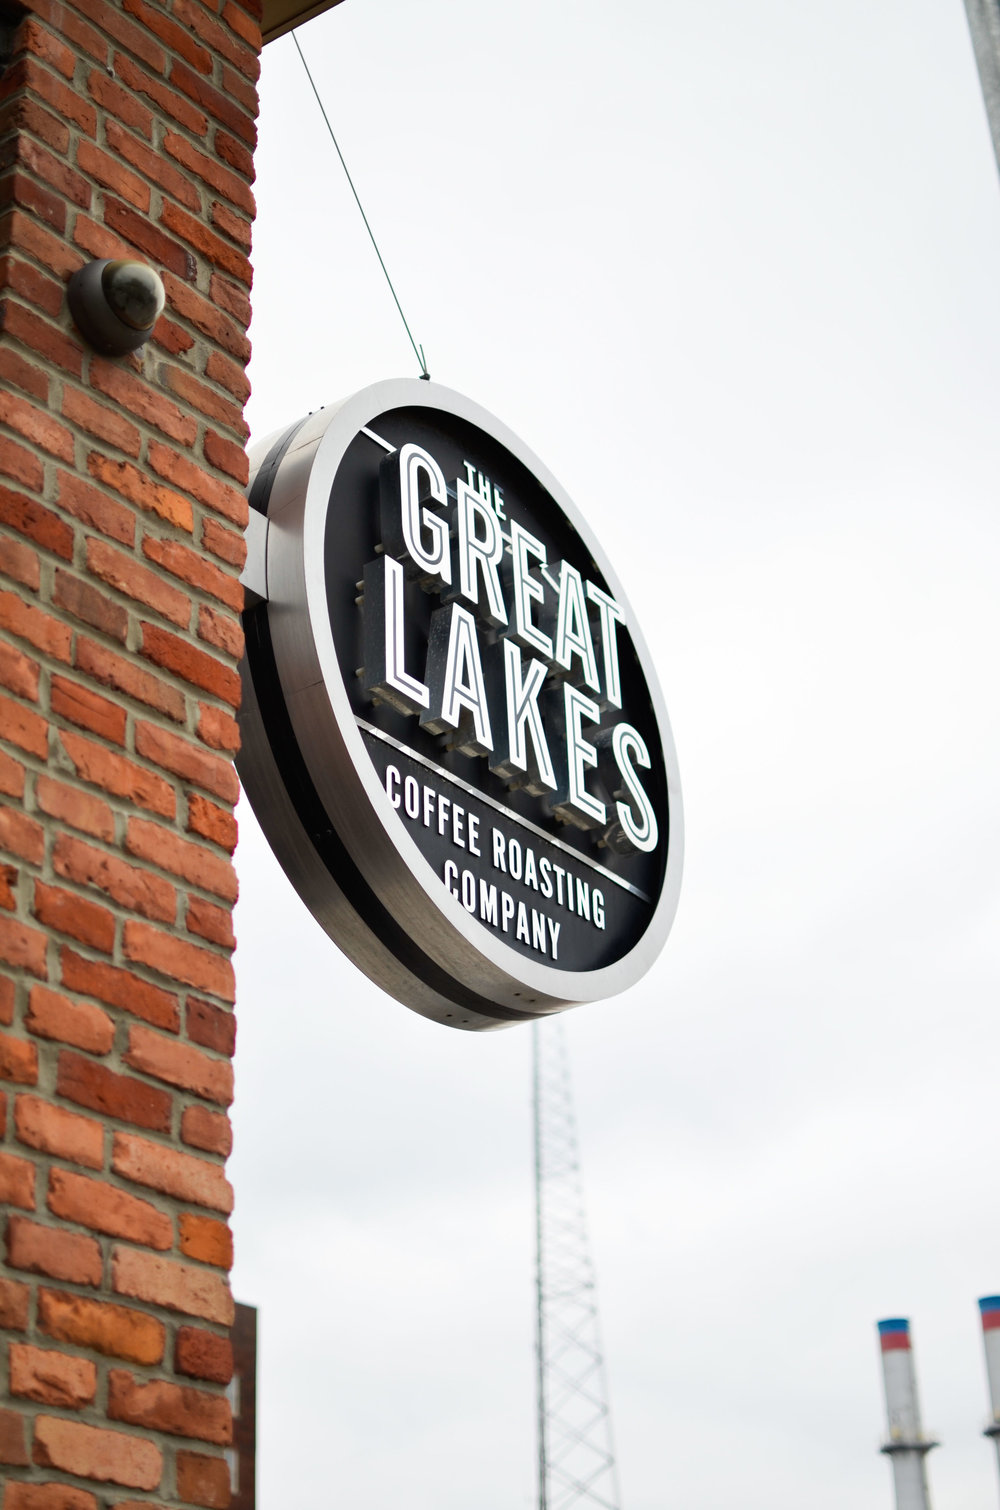 Wendling_Boyd_Great_Lakes_Coffee_Co.jpeg